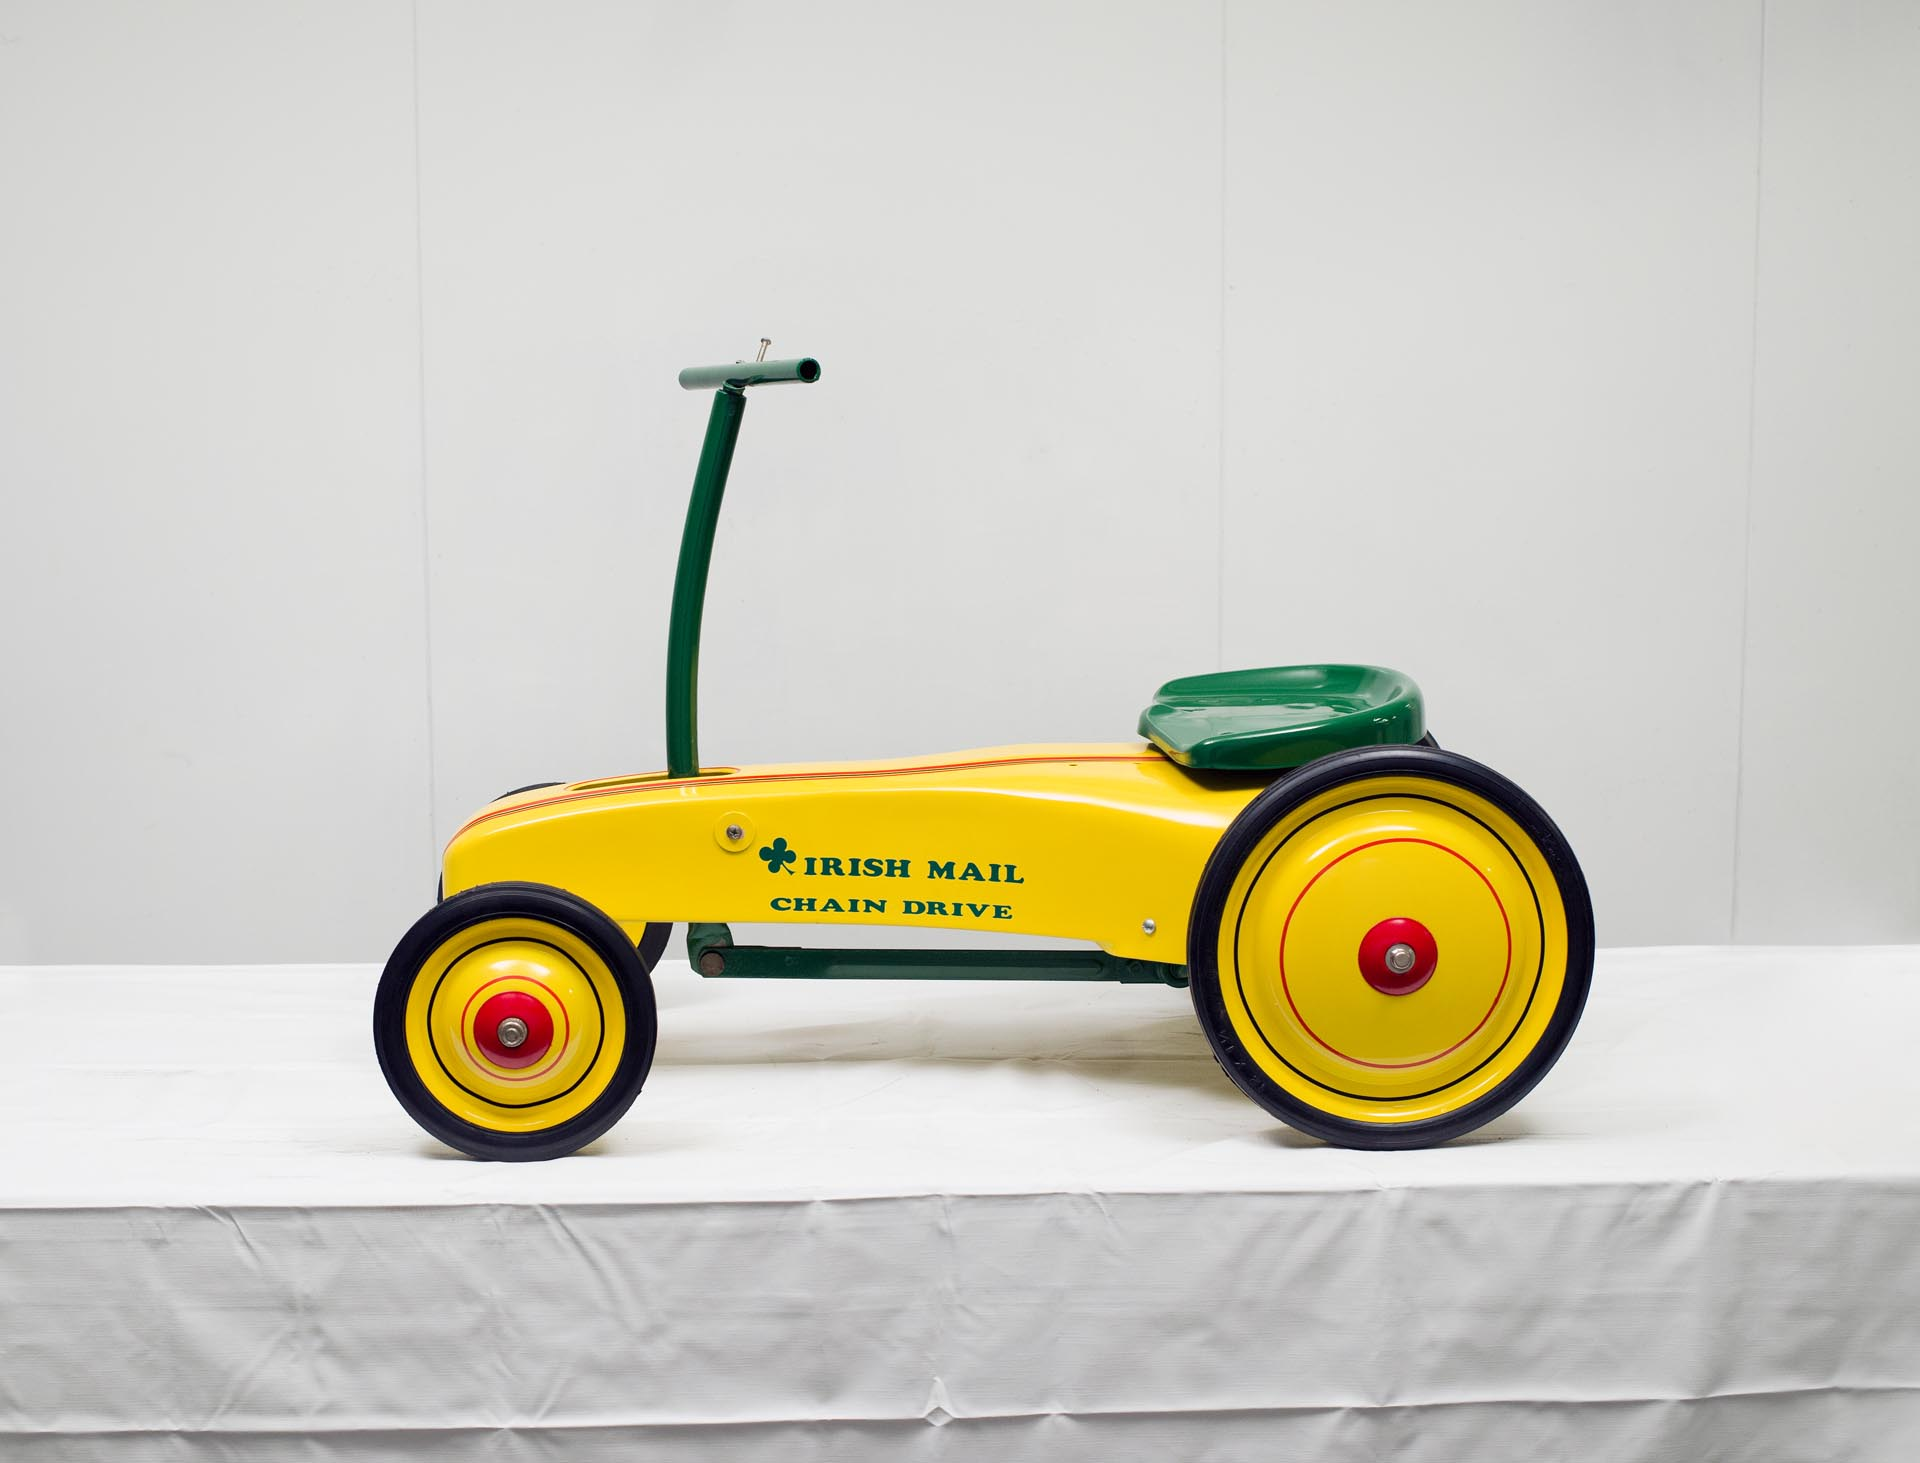 1971 Garton Irish Mail Pedal Car